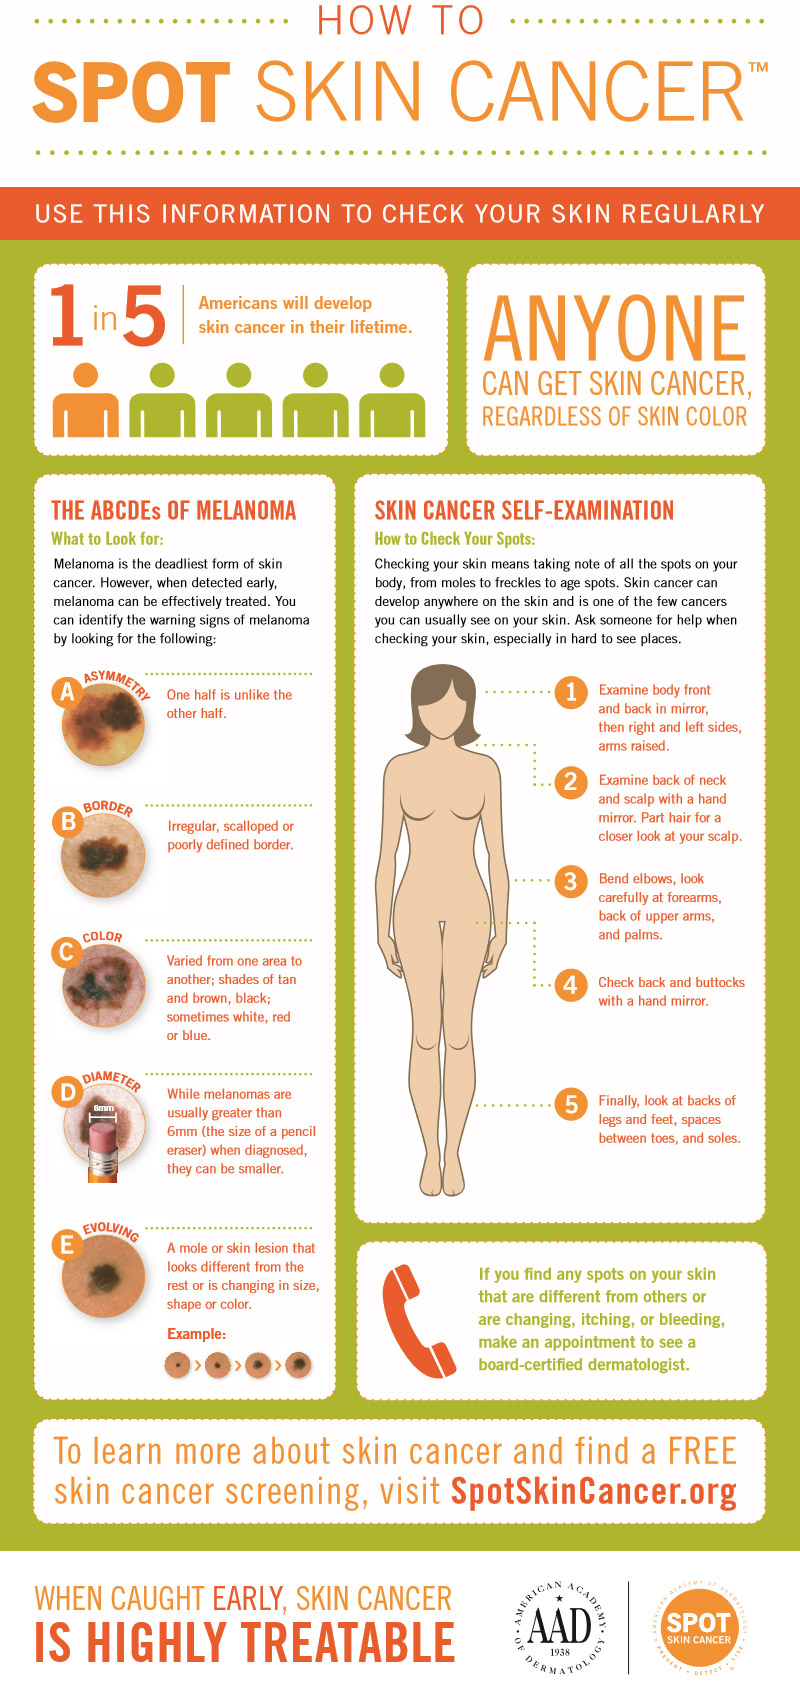 How to spot skin cancer infographic